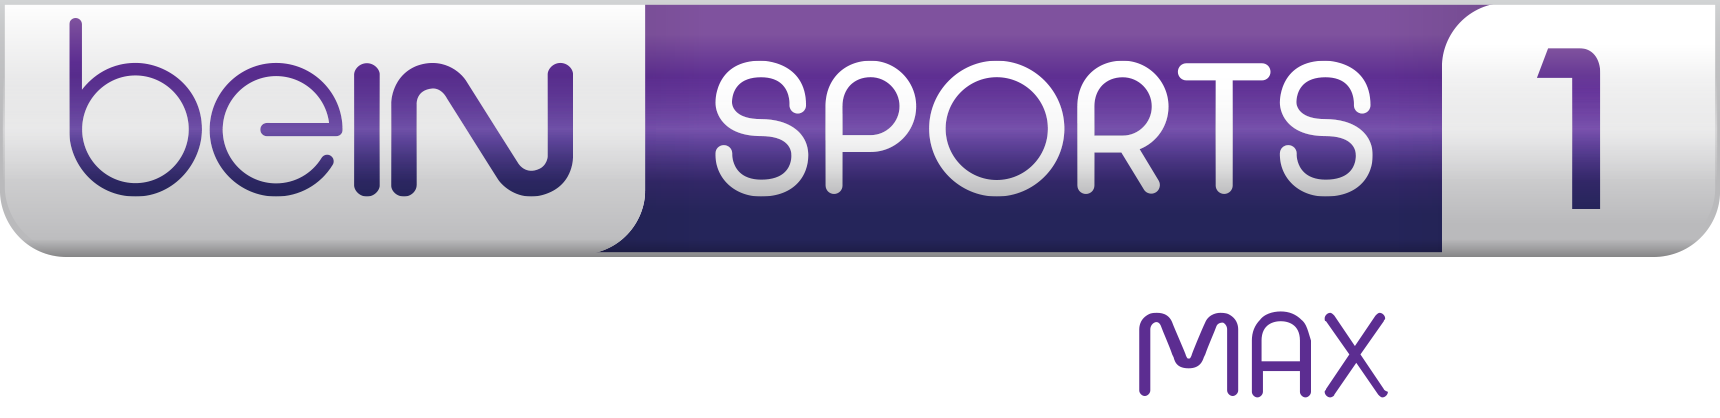 File:Logo bein sports max 1.png.